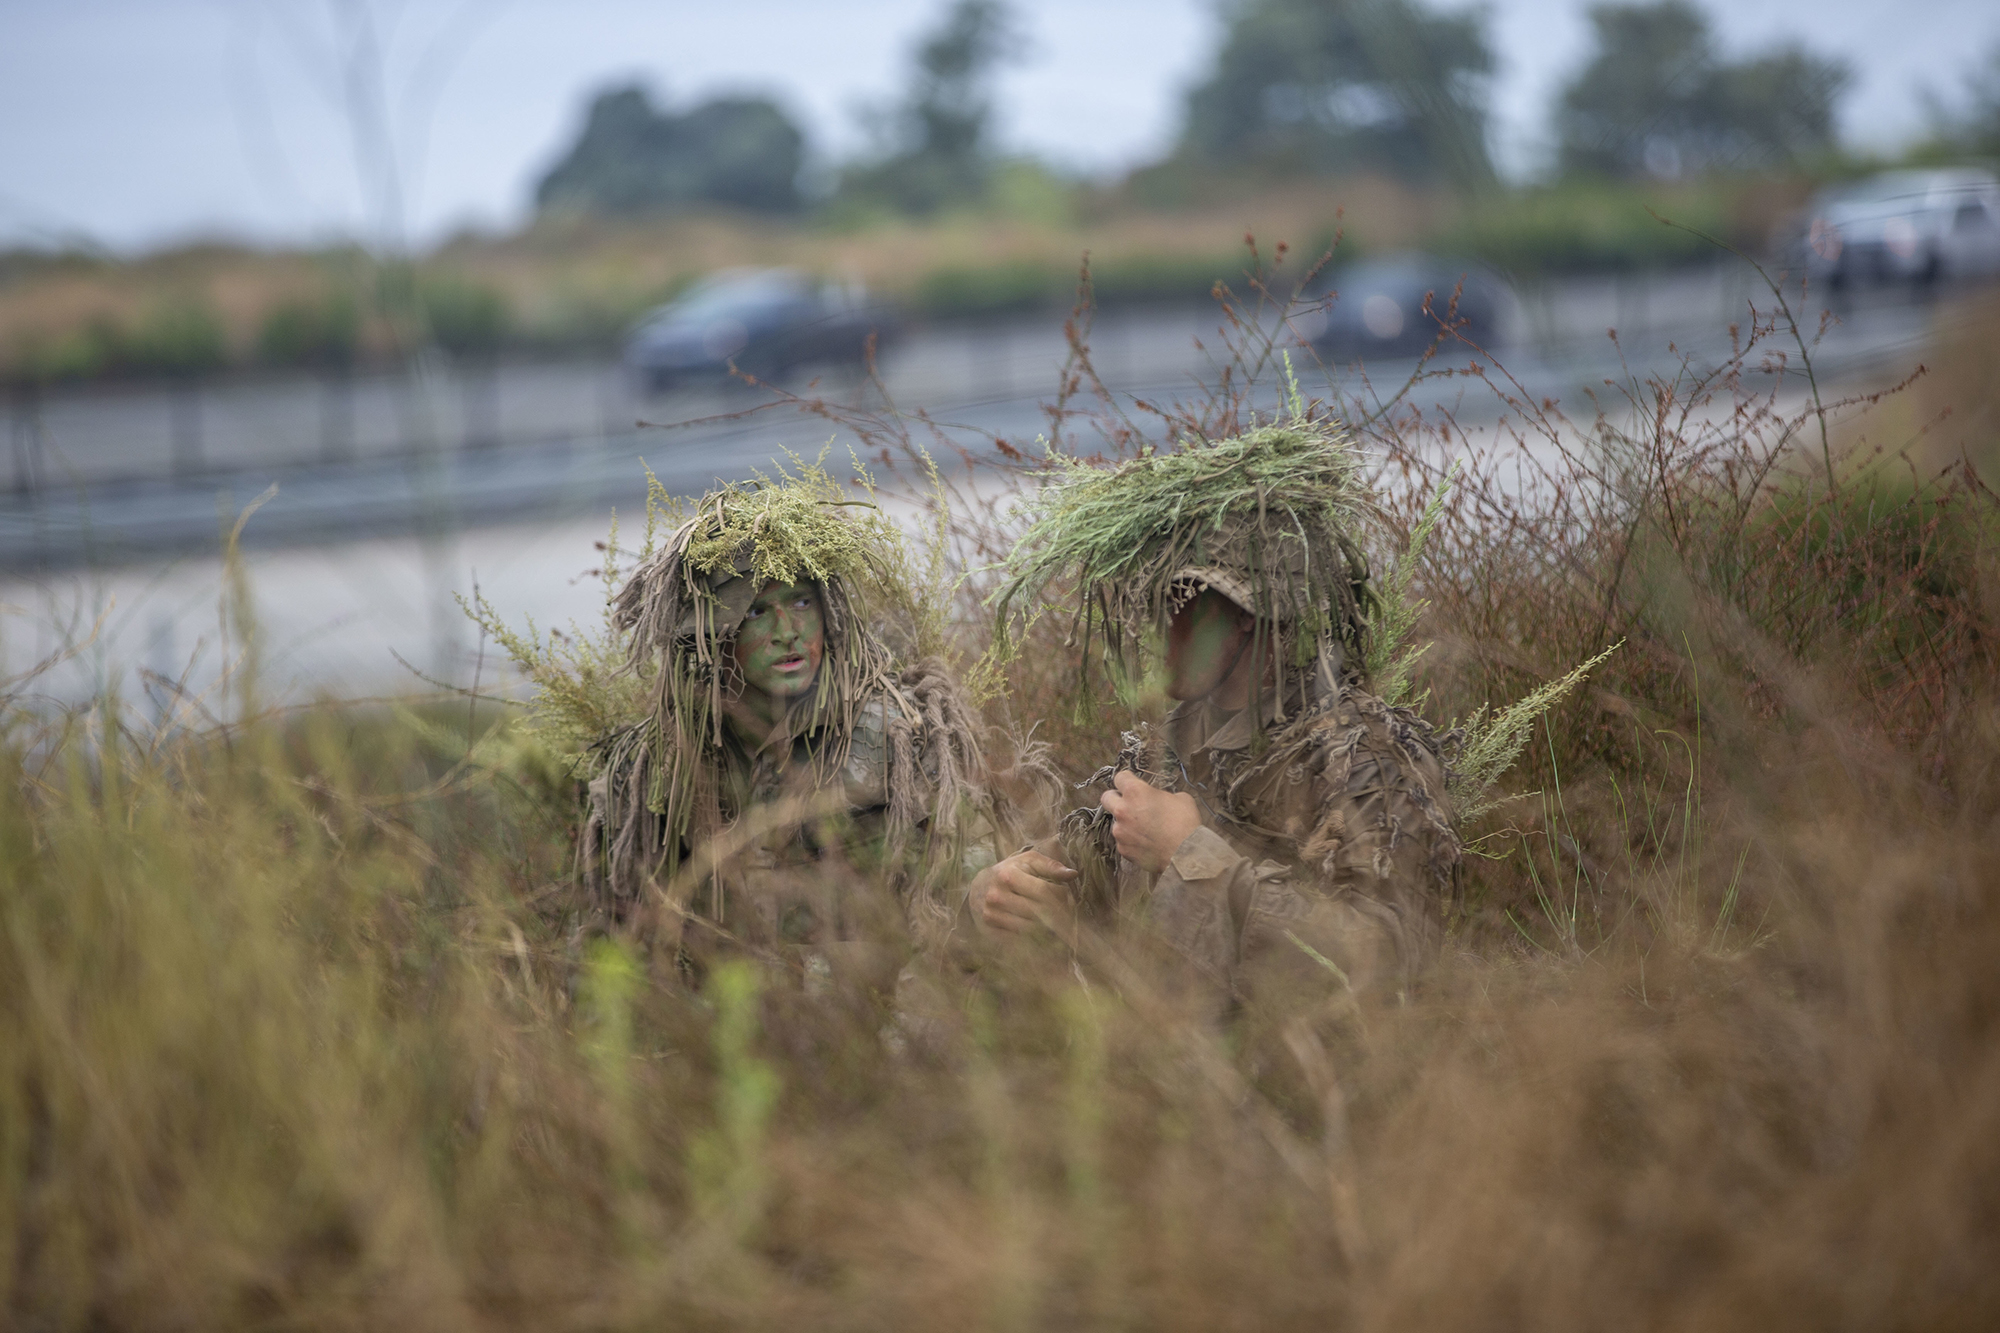 Marines with the Scout Sniper Course, Reconnaissance Training Company, Advanced Infantry Training Battalion, School of Infantry - West, work to conceal themselves during an exercise in the Romeo Training Area on Marine Corps Base Camp Pendleton, Calif., July 27, 2020. (Lance Cpl. Drake Nickels/Marine Corps)